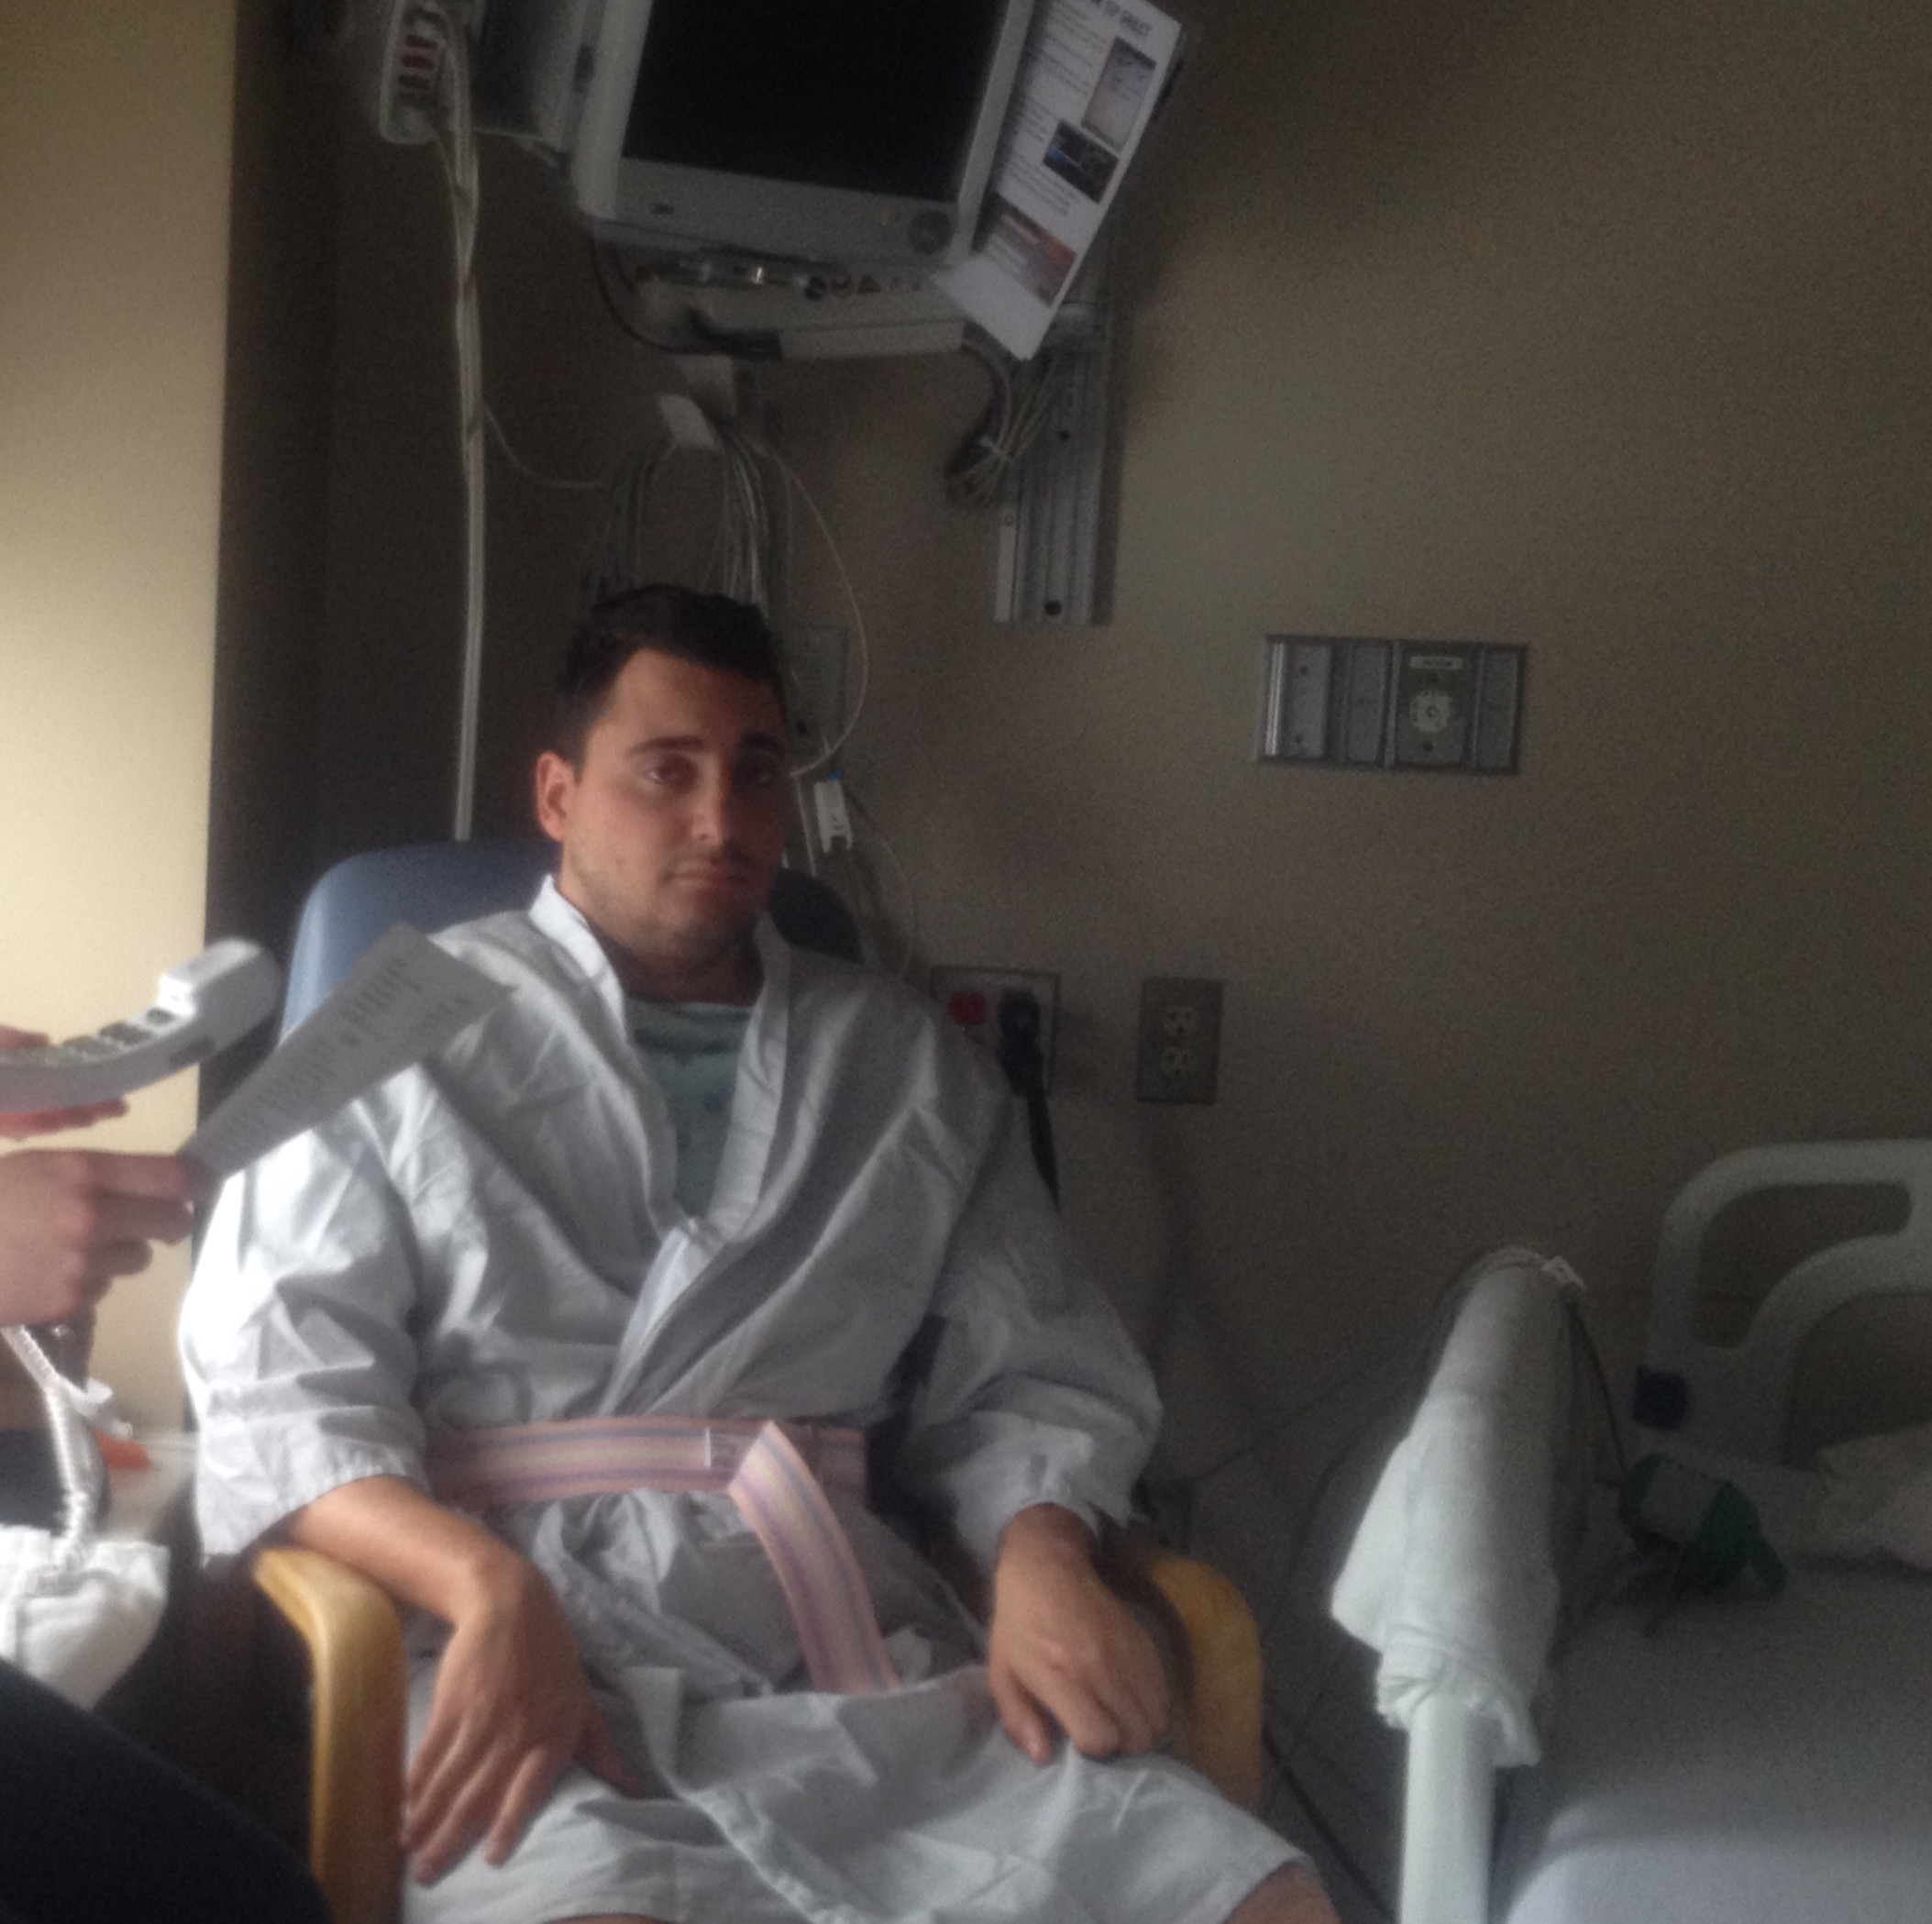 March 2015, days after my injury in the neuro-ICU, sitting up for the first time post-injury.